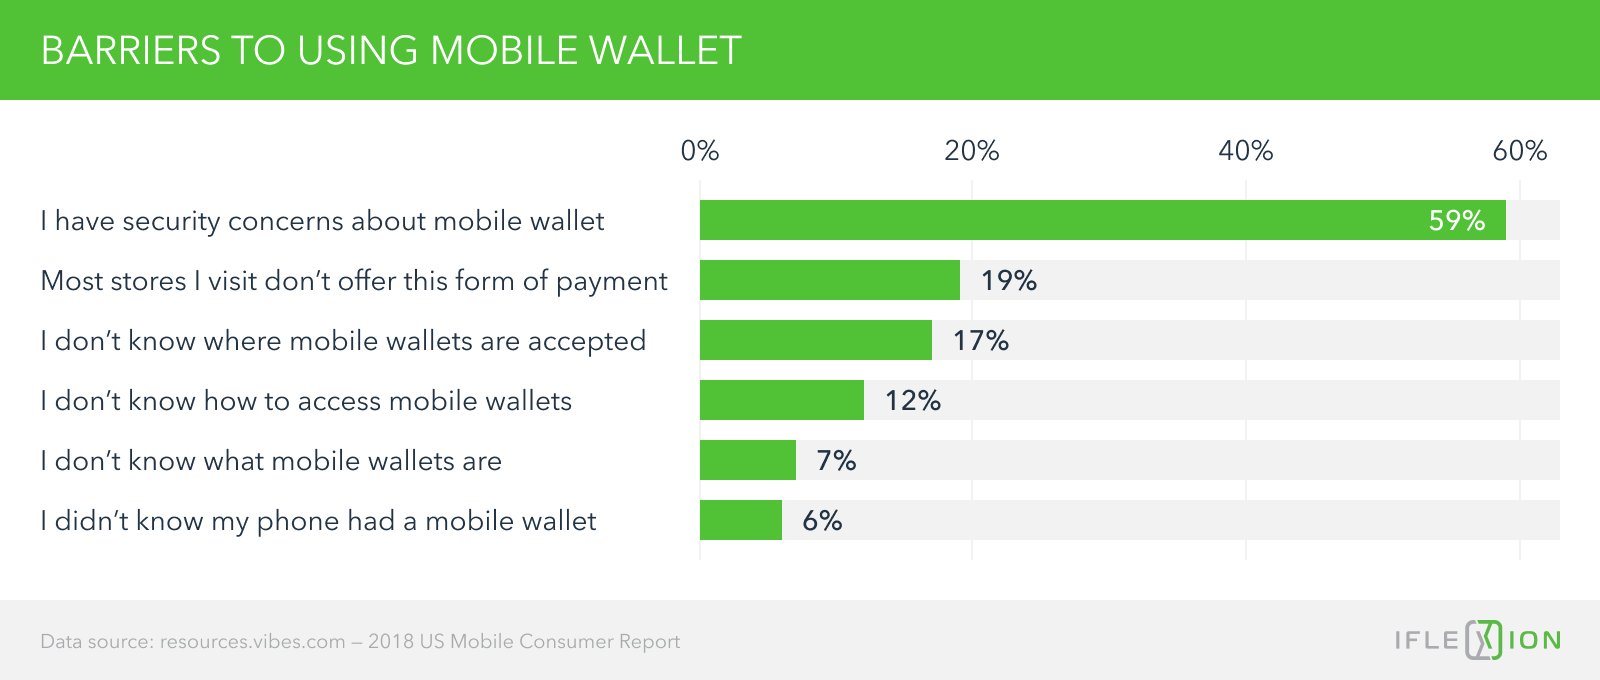 Barriers to using mobile wallet